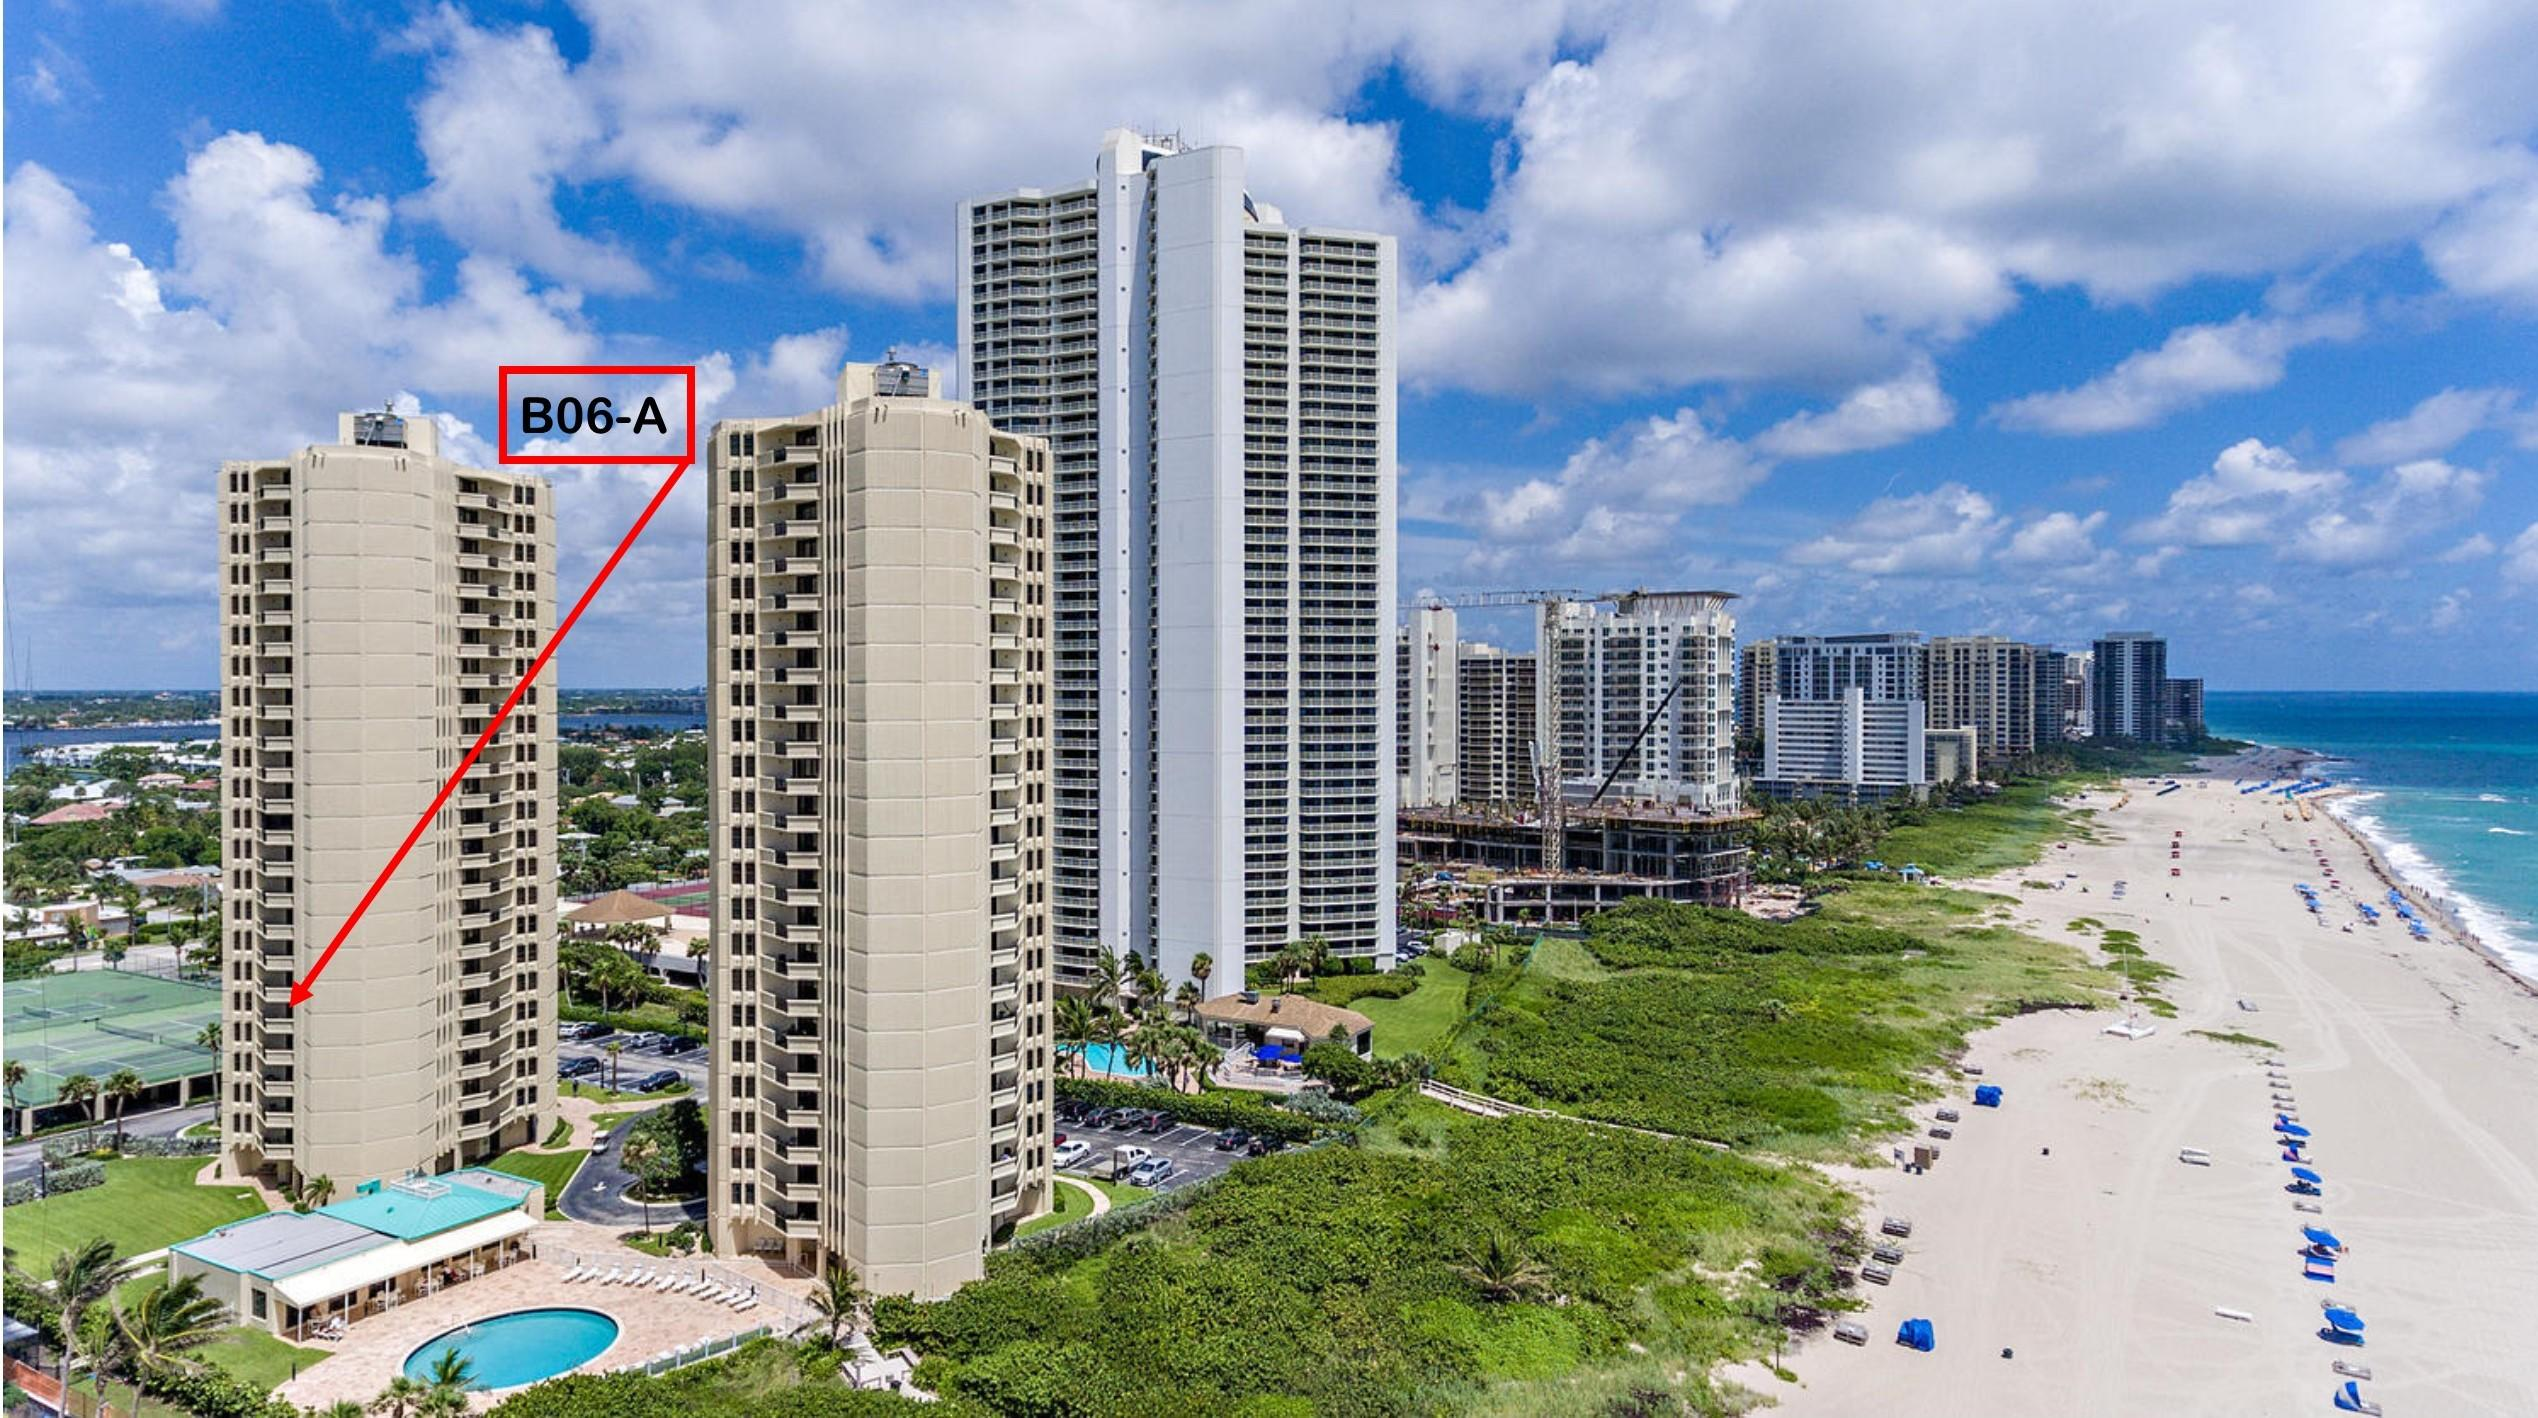 New Home for sale at 2800 Ocean Drive in Singer Island